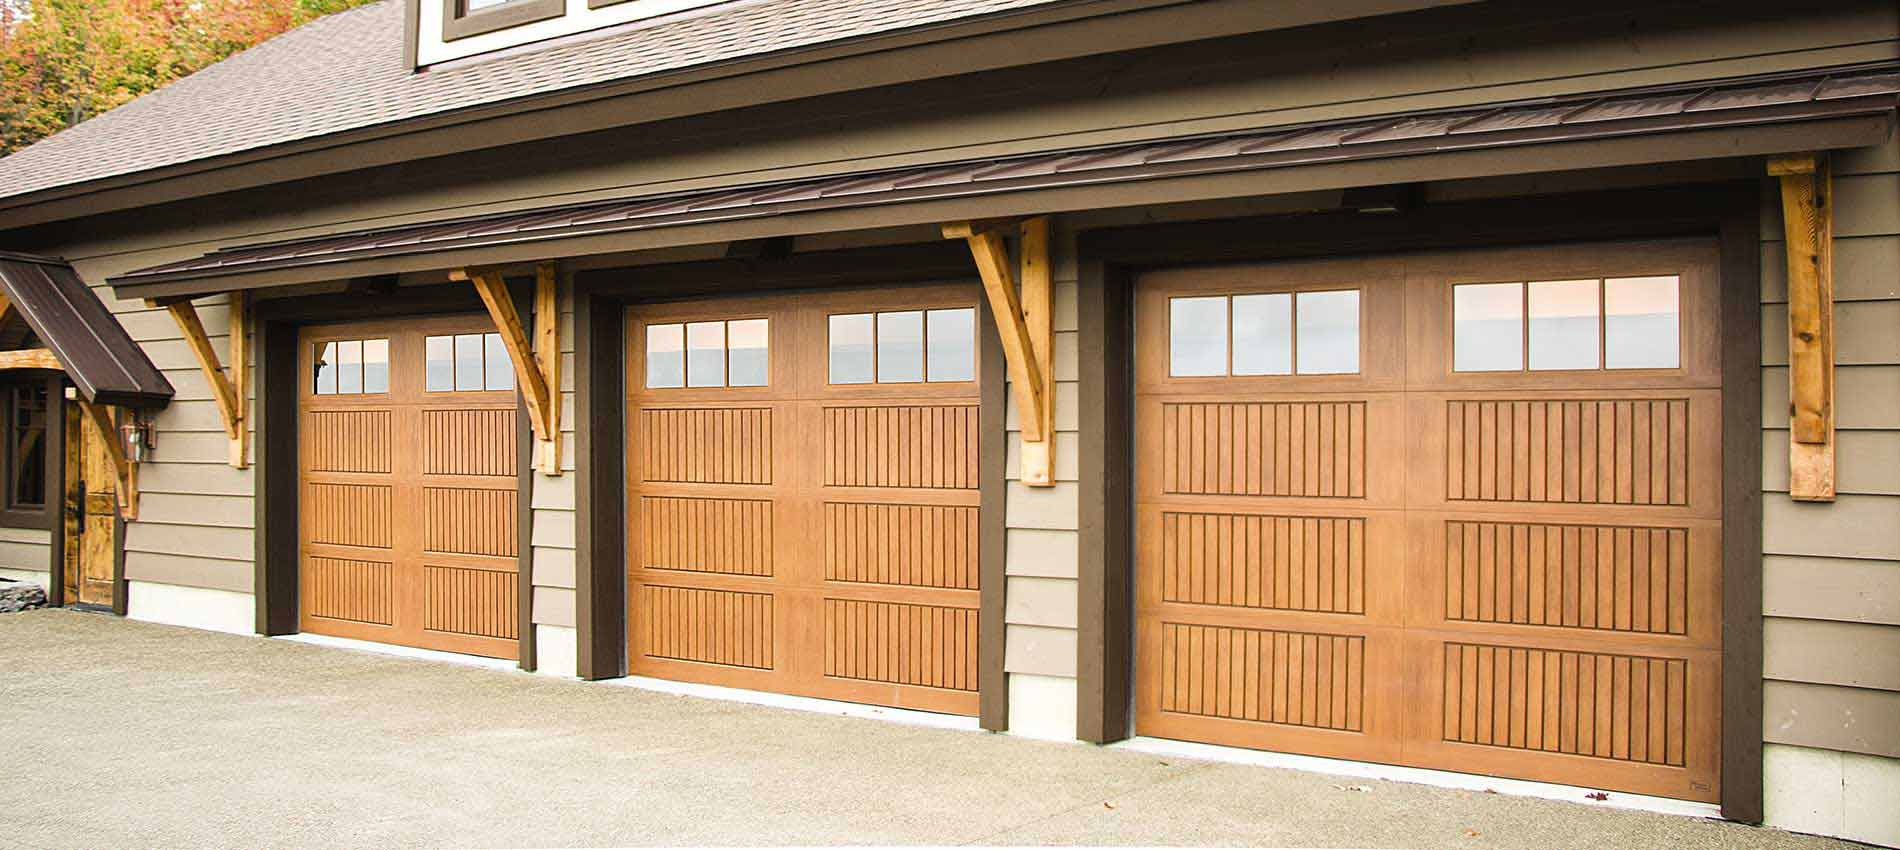 Wayne dalton garage doors for Wayne dalton garage doors